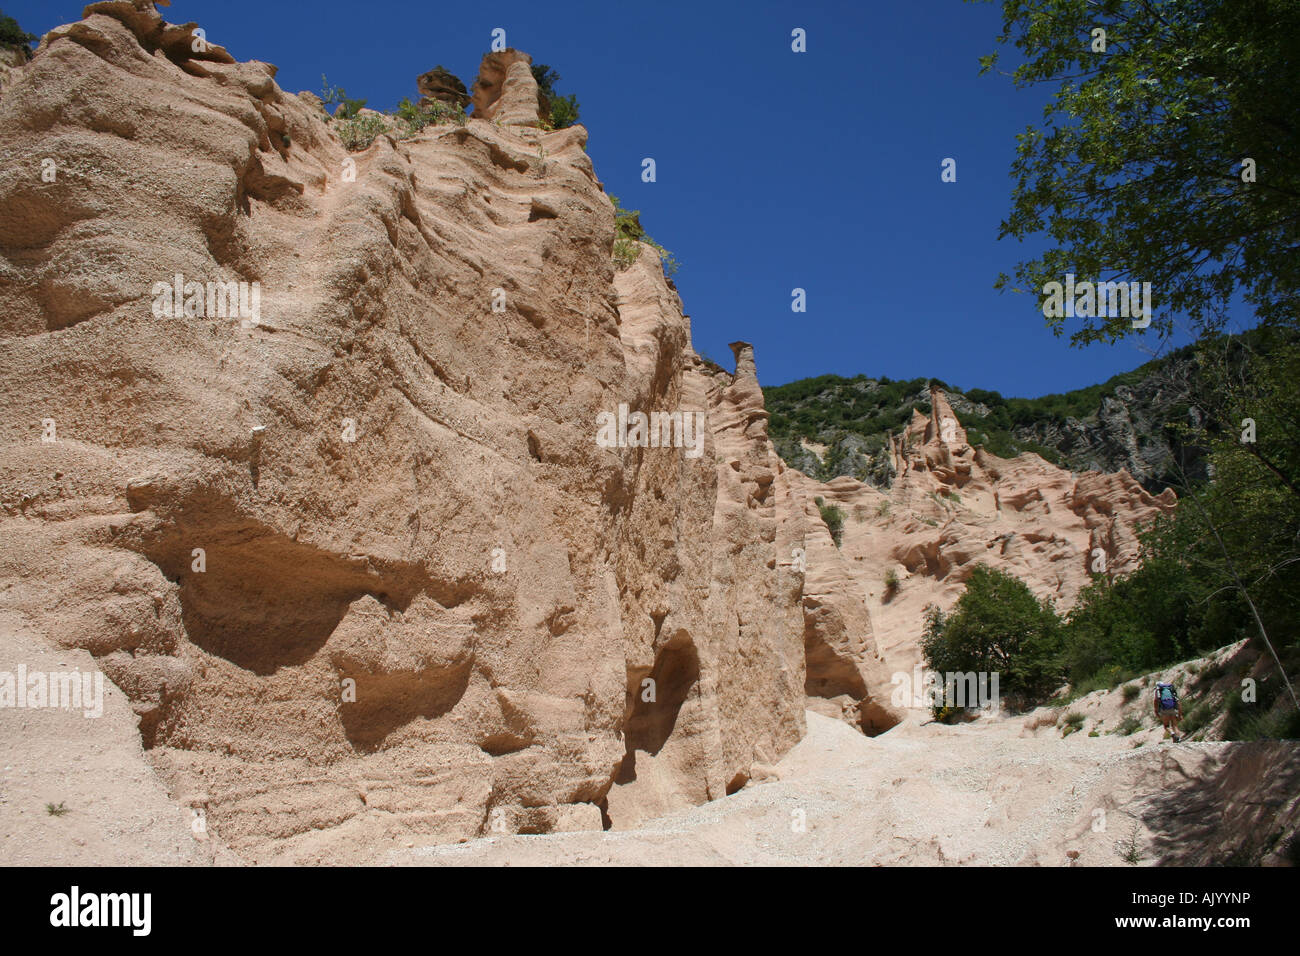 Walker exploring the spectacular Lame Rosse eroded rock formation near Fiastra lake and dam, Sibillini National - Stock Image